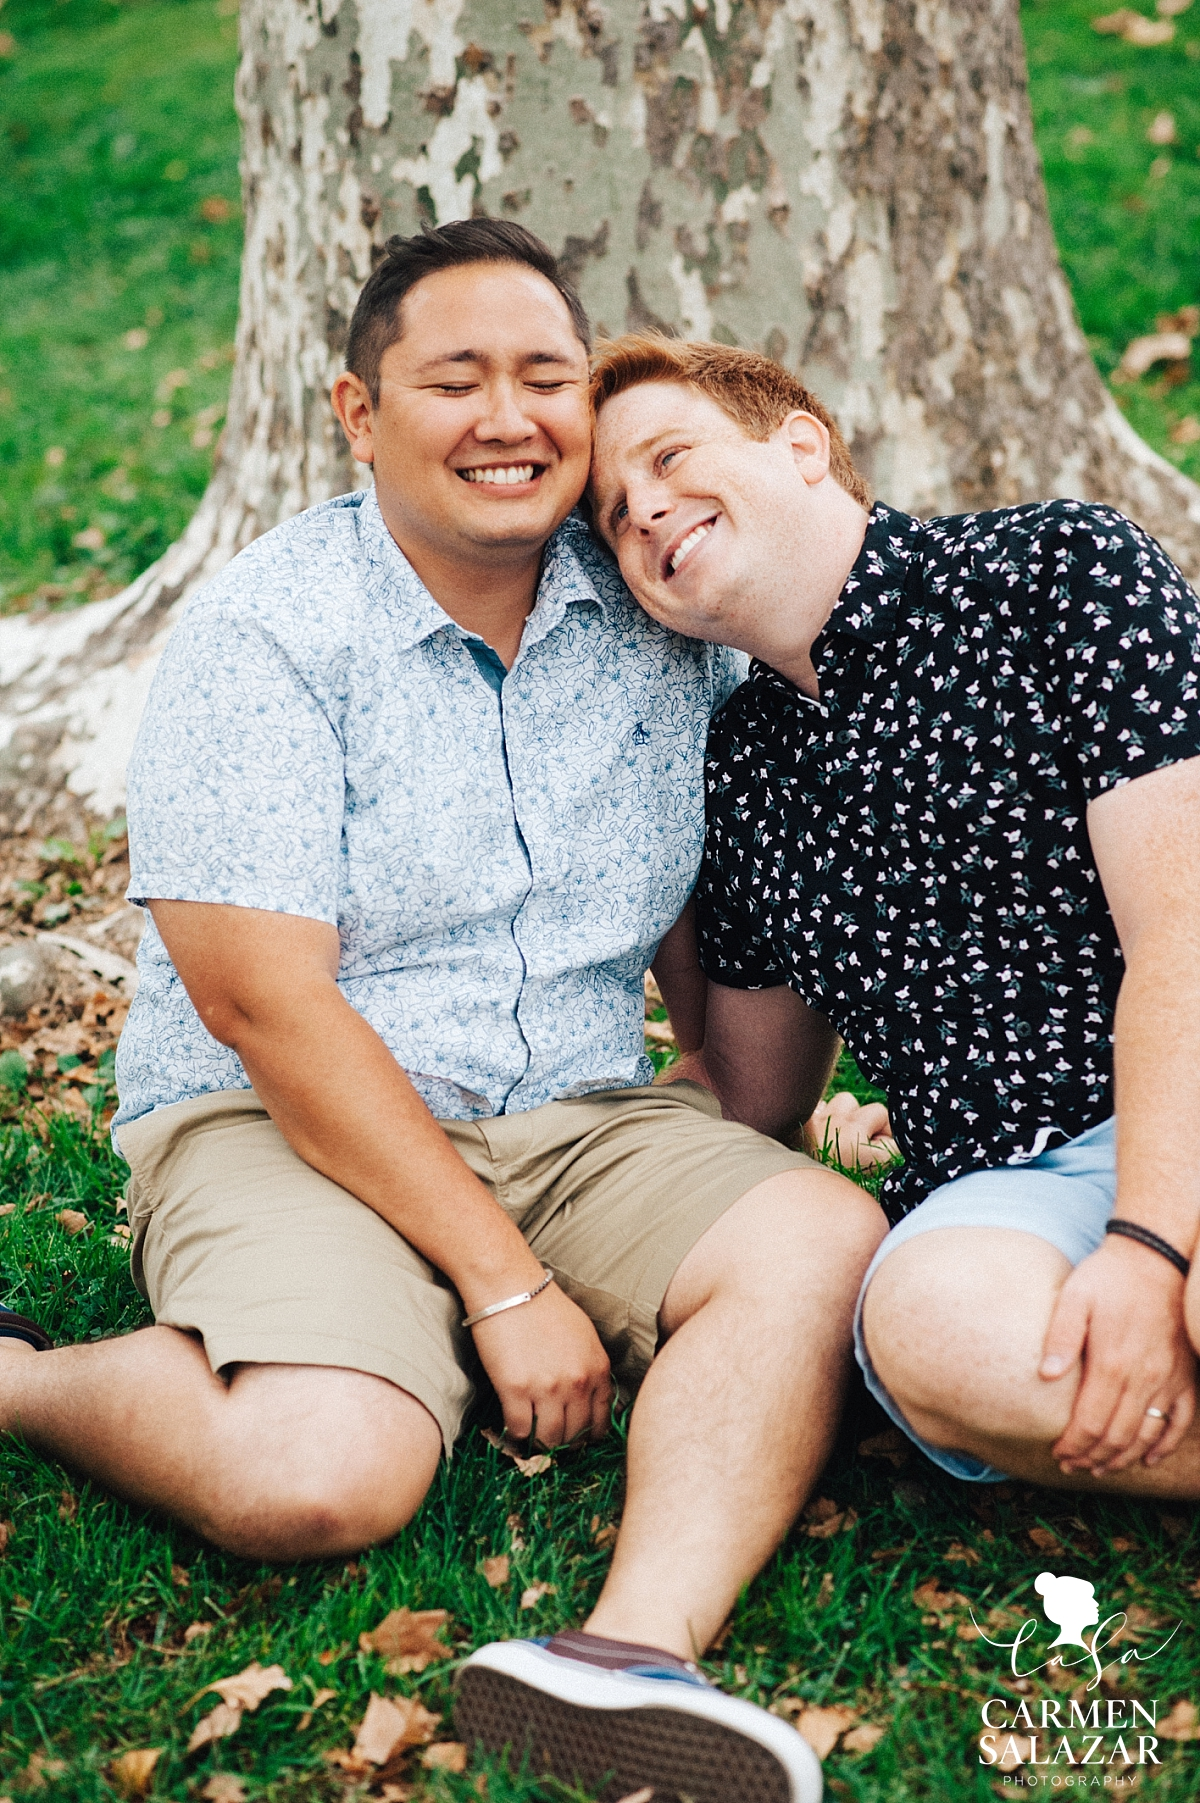 Outdoor gay Davis engagement session - Carmen Salazar